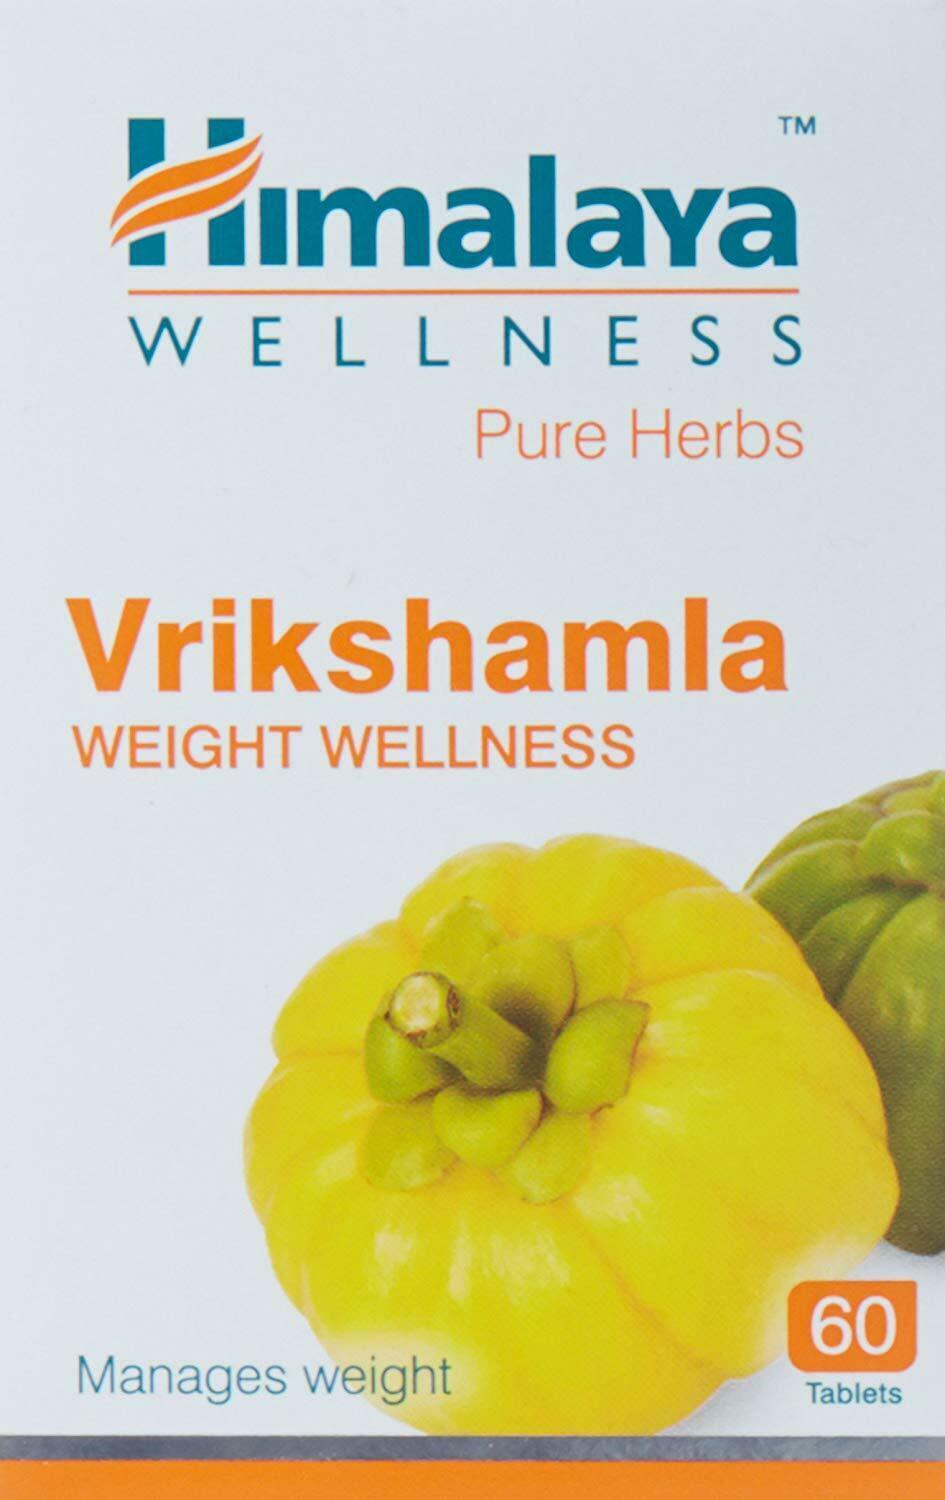 Himalaya Wellness Pure Herbs Vrikshamla Weight Wellness 60 Tablets FREE SHIPPING - $10.35